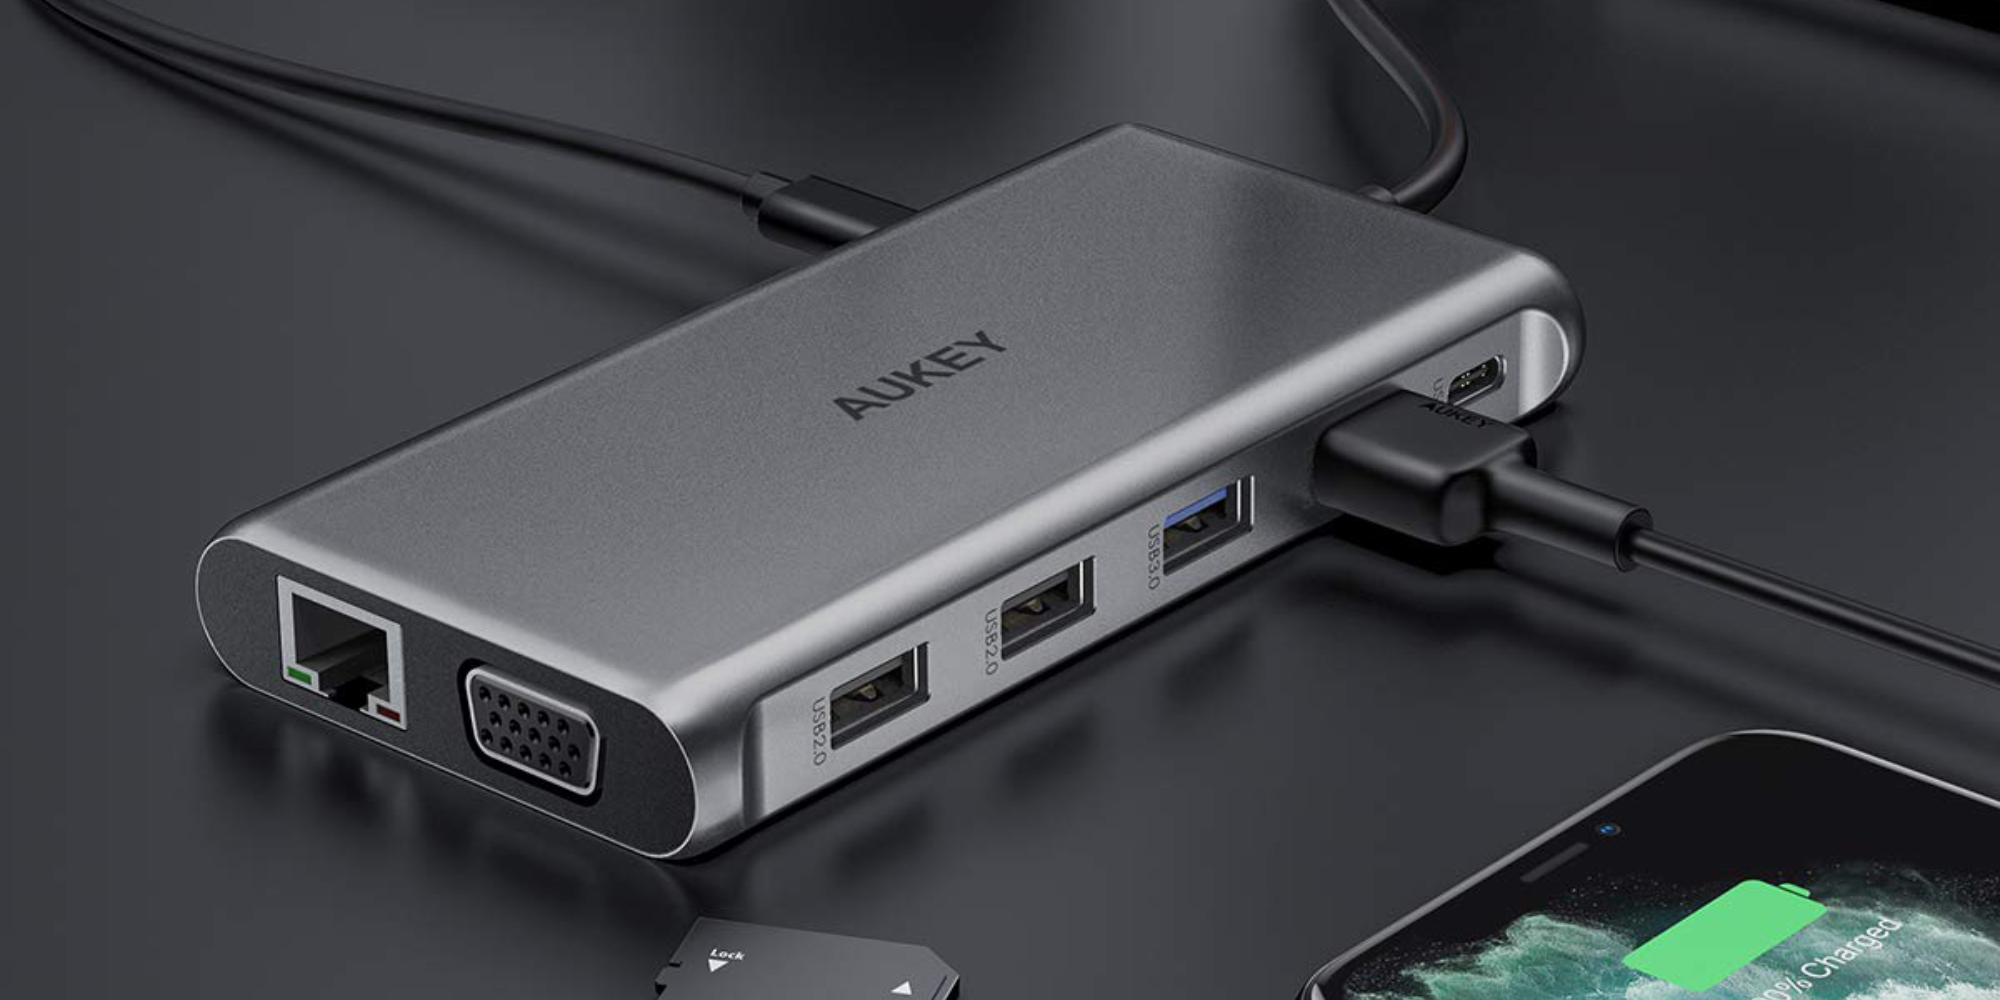 Broaden your Mac's capabilities with an AUKEY 12-in-1 USB-C Hub: $46 (Reg. $80) - 9to5Toys